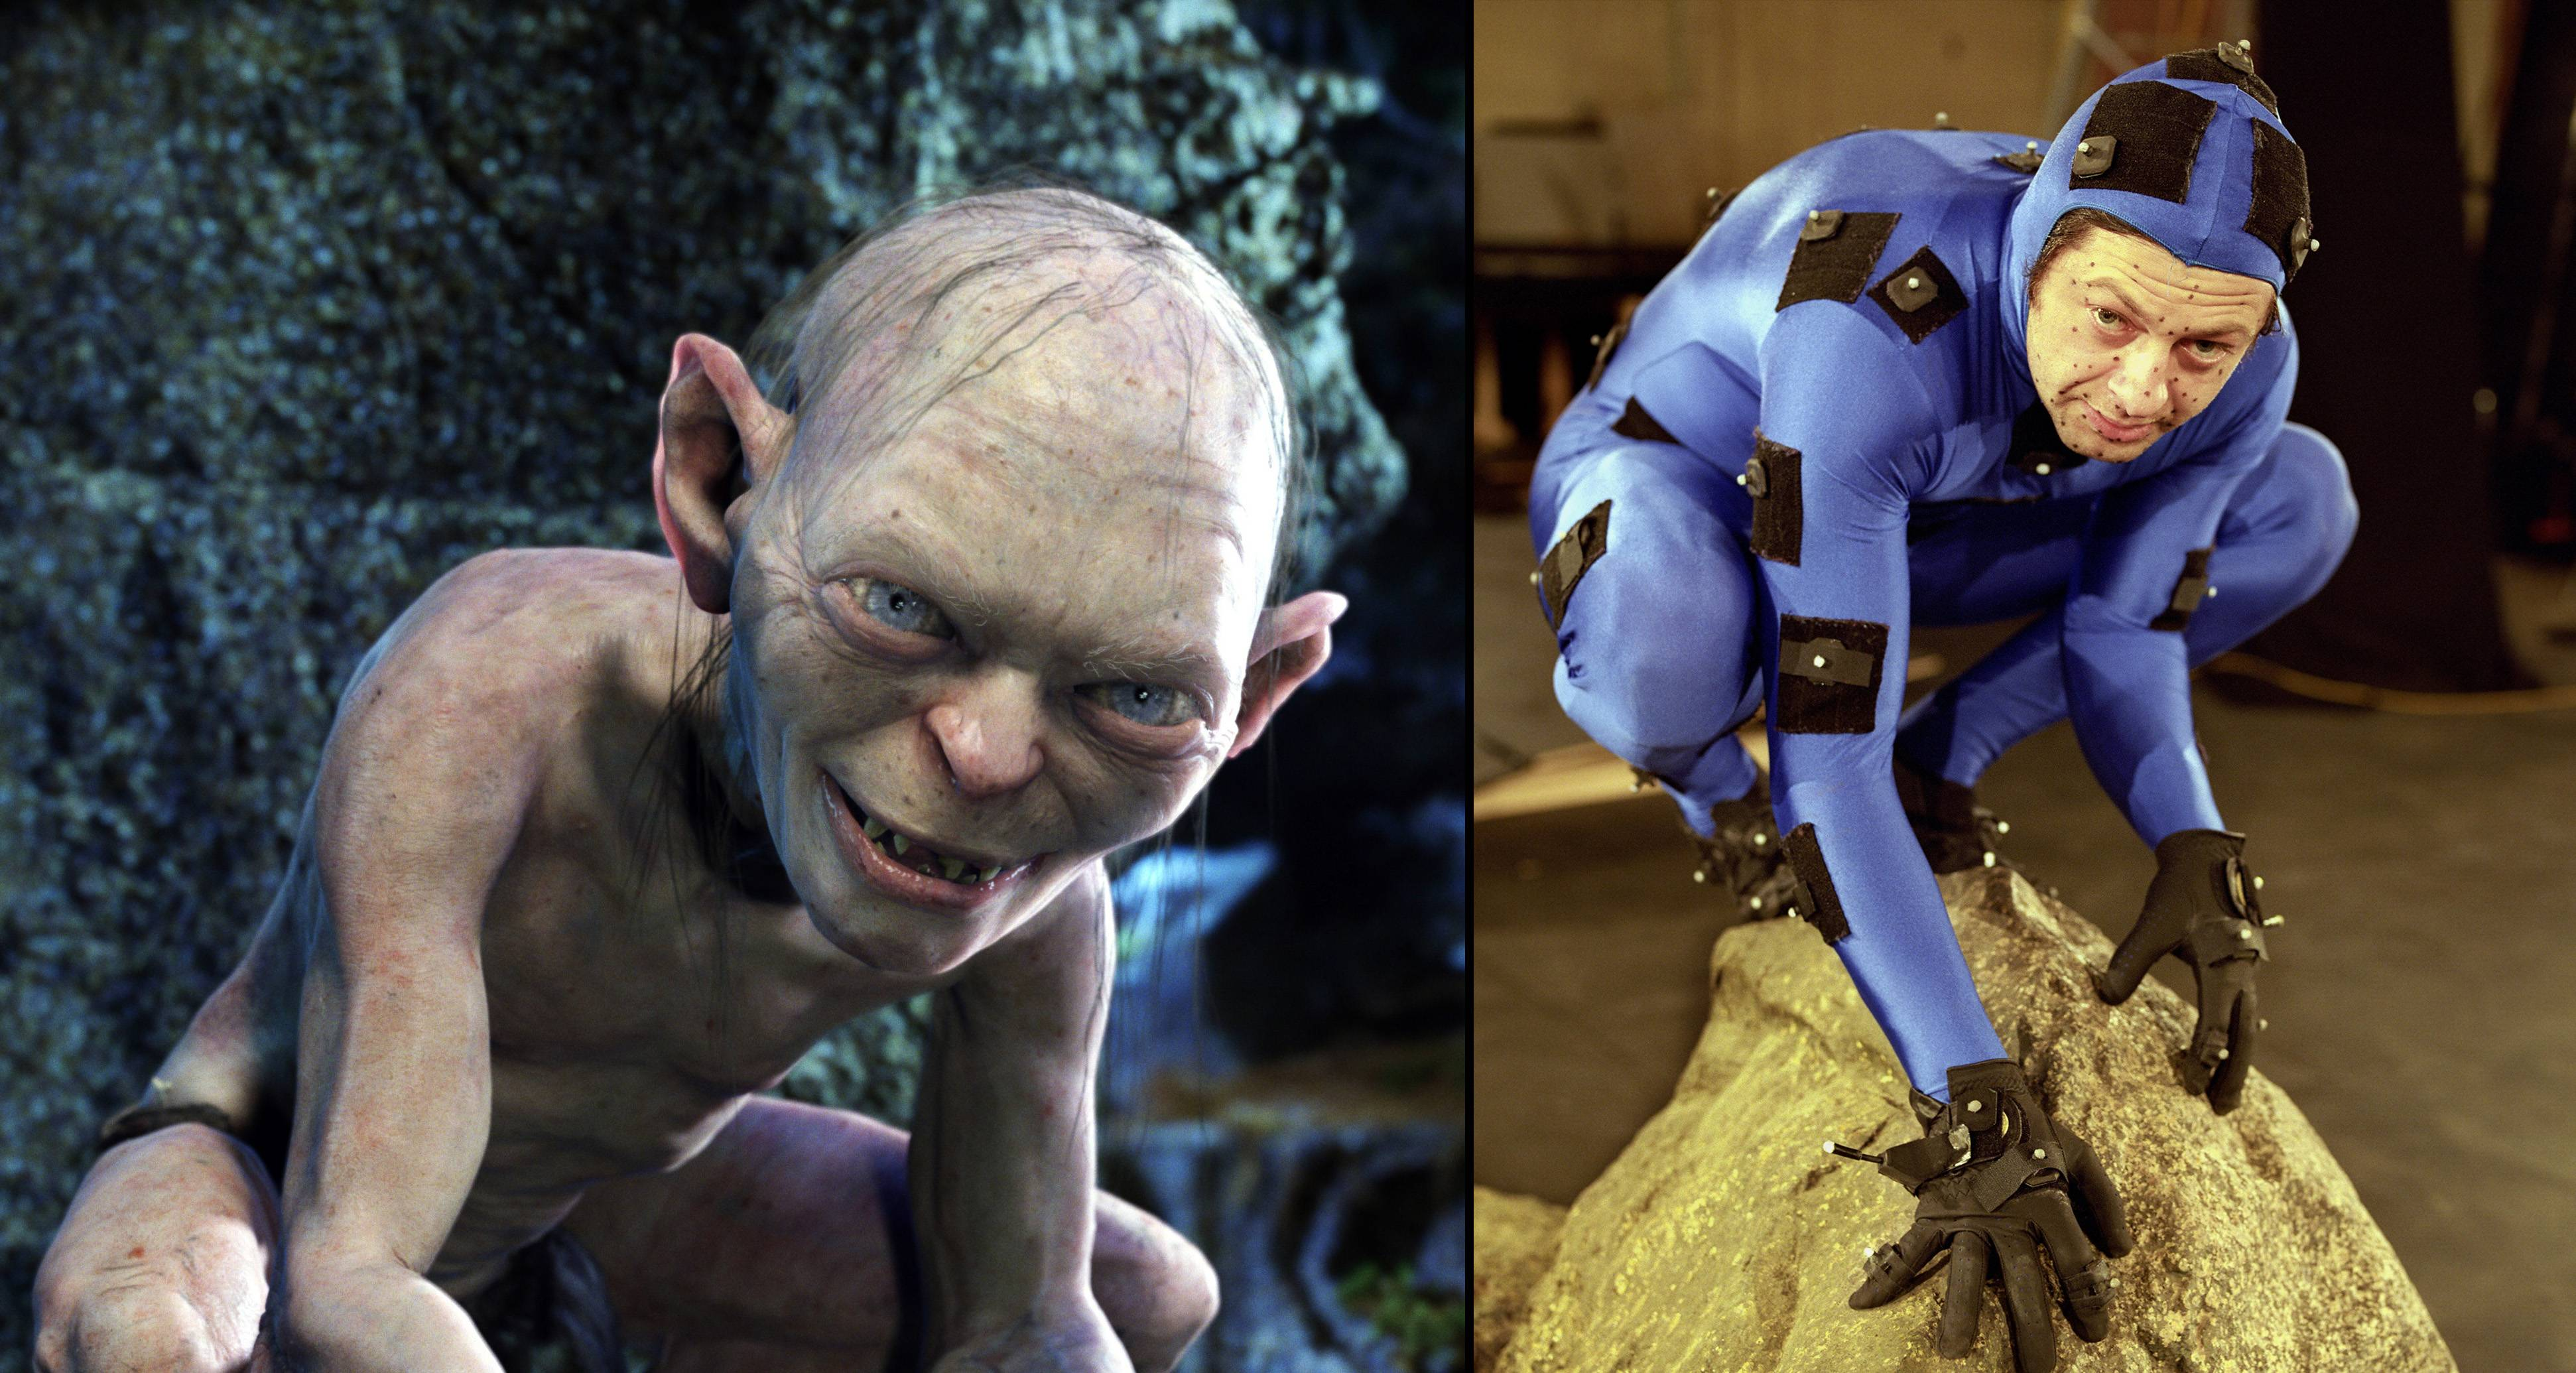 Lord Of The Rings Two Towers: the character Gollum who's role is crucial to the journey of Frodo and Sam--Gollum's movements are performed via computer program by actor Andy Serkis. Photo: New Line Cinema